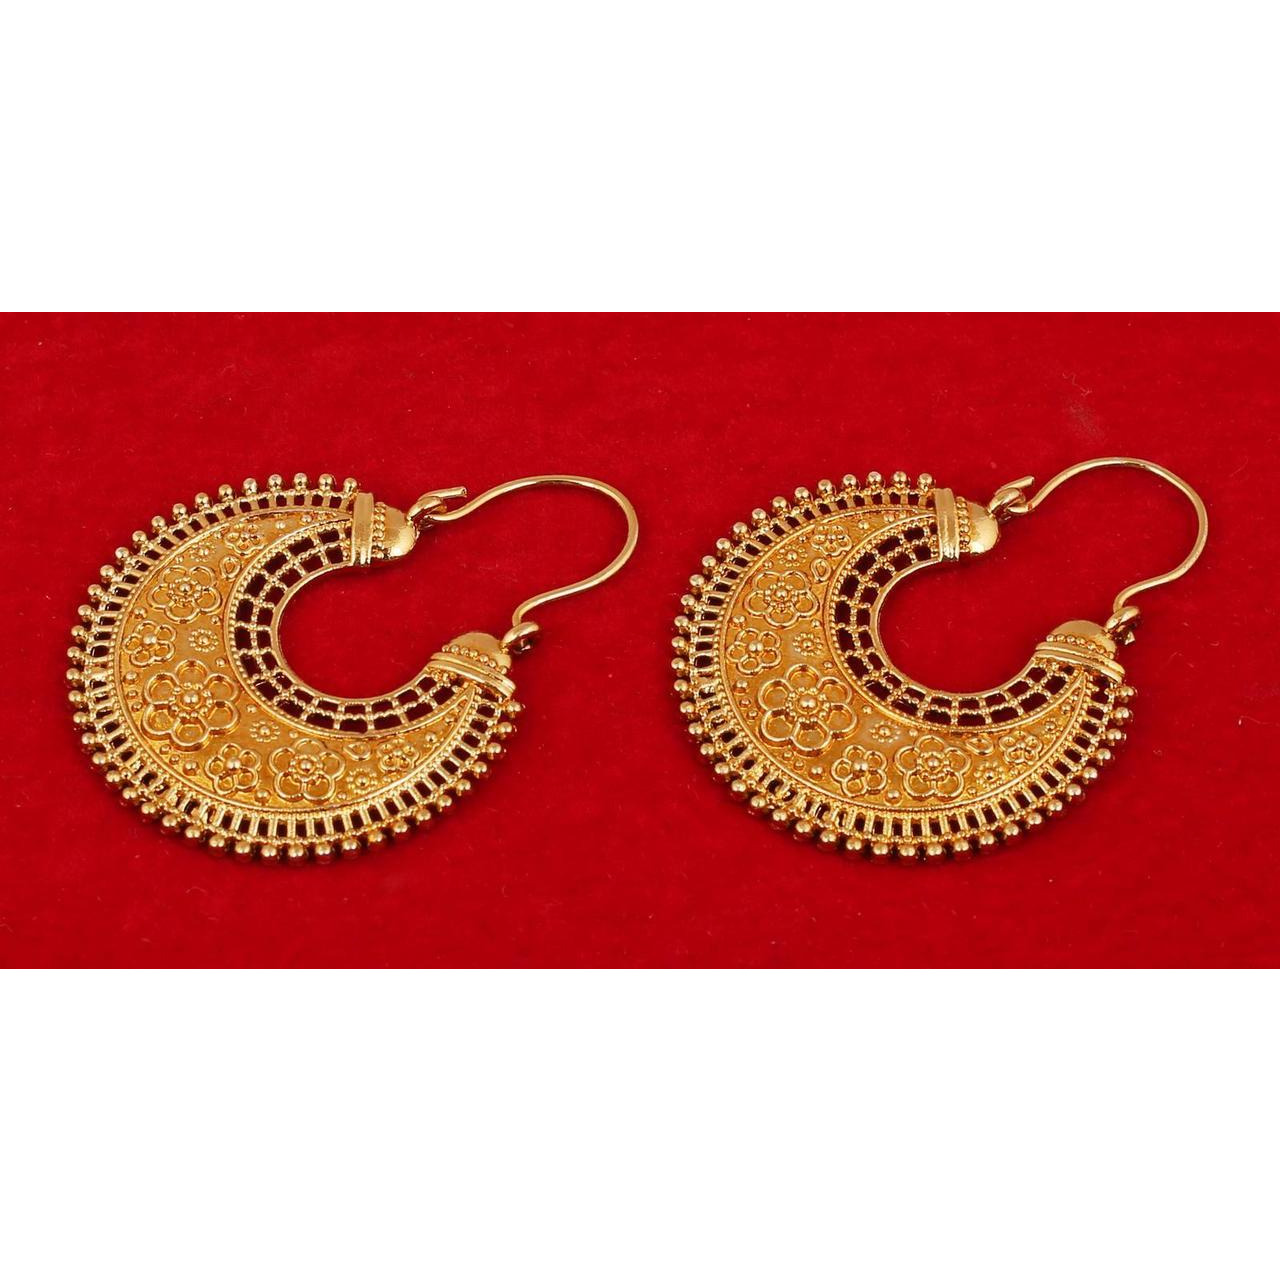 Indian fringes floral south chand moon earrings in antique gold tone for women